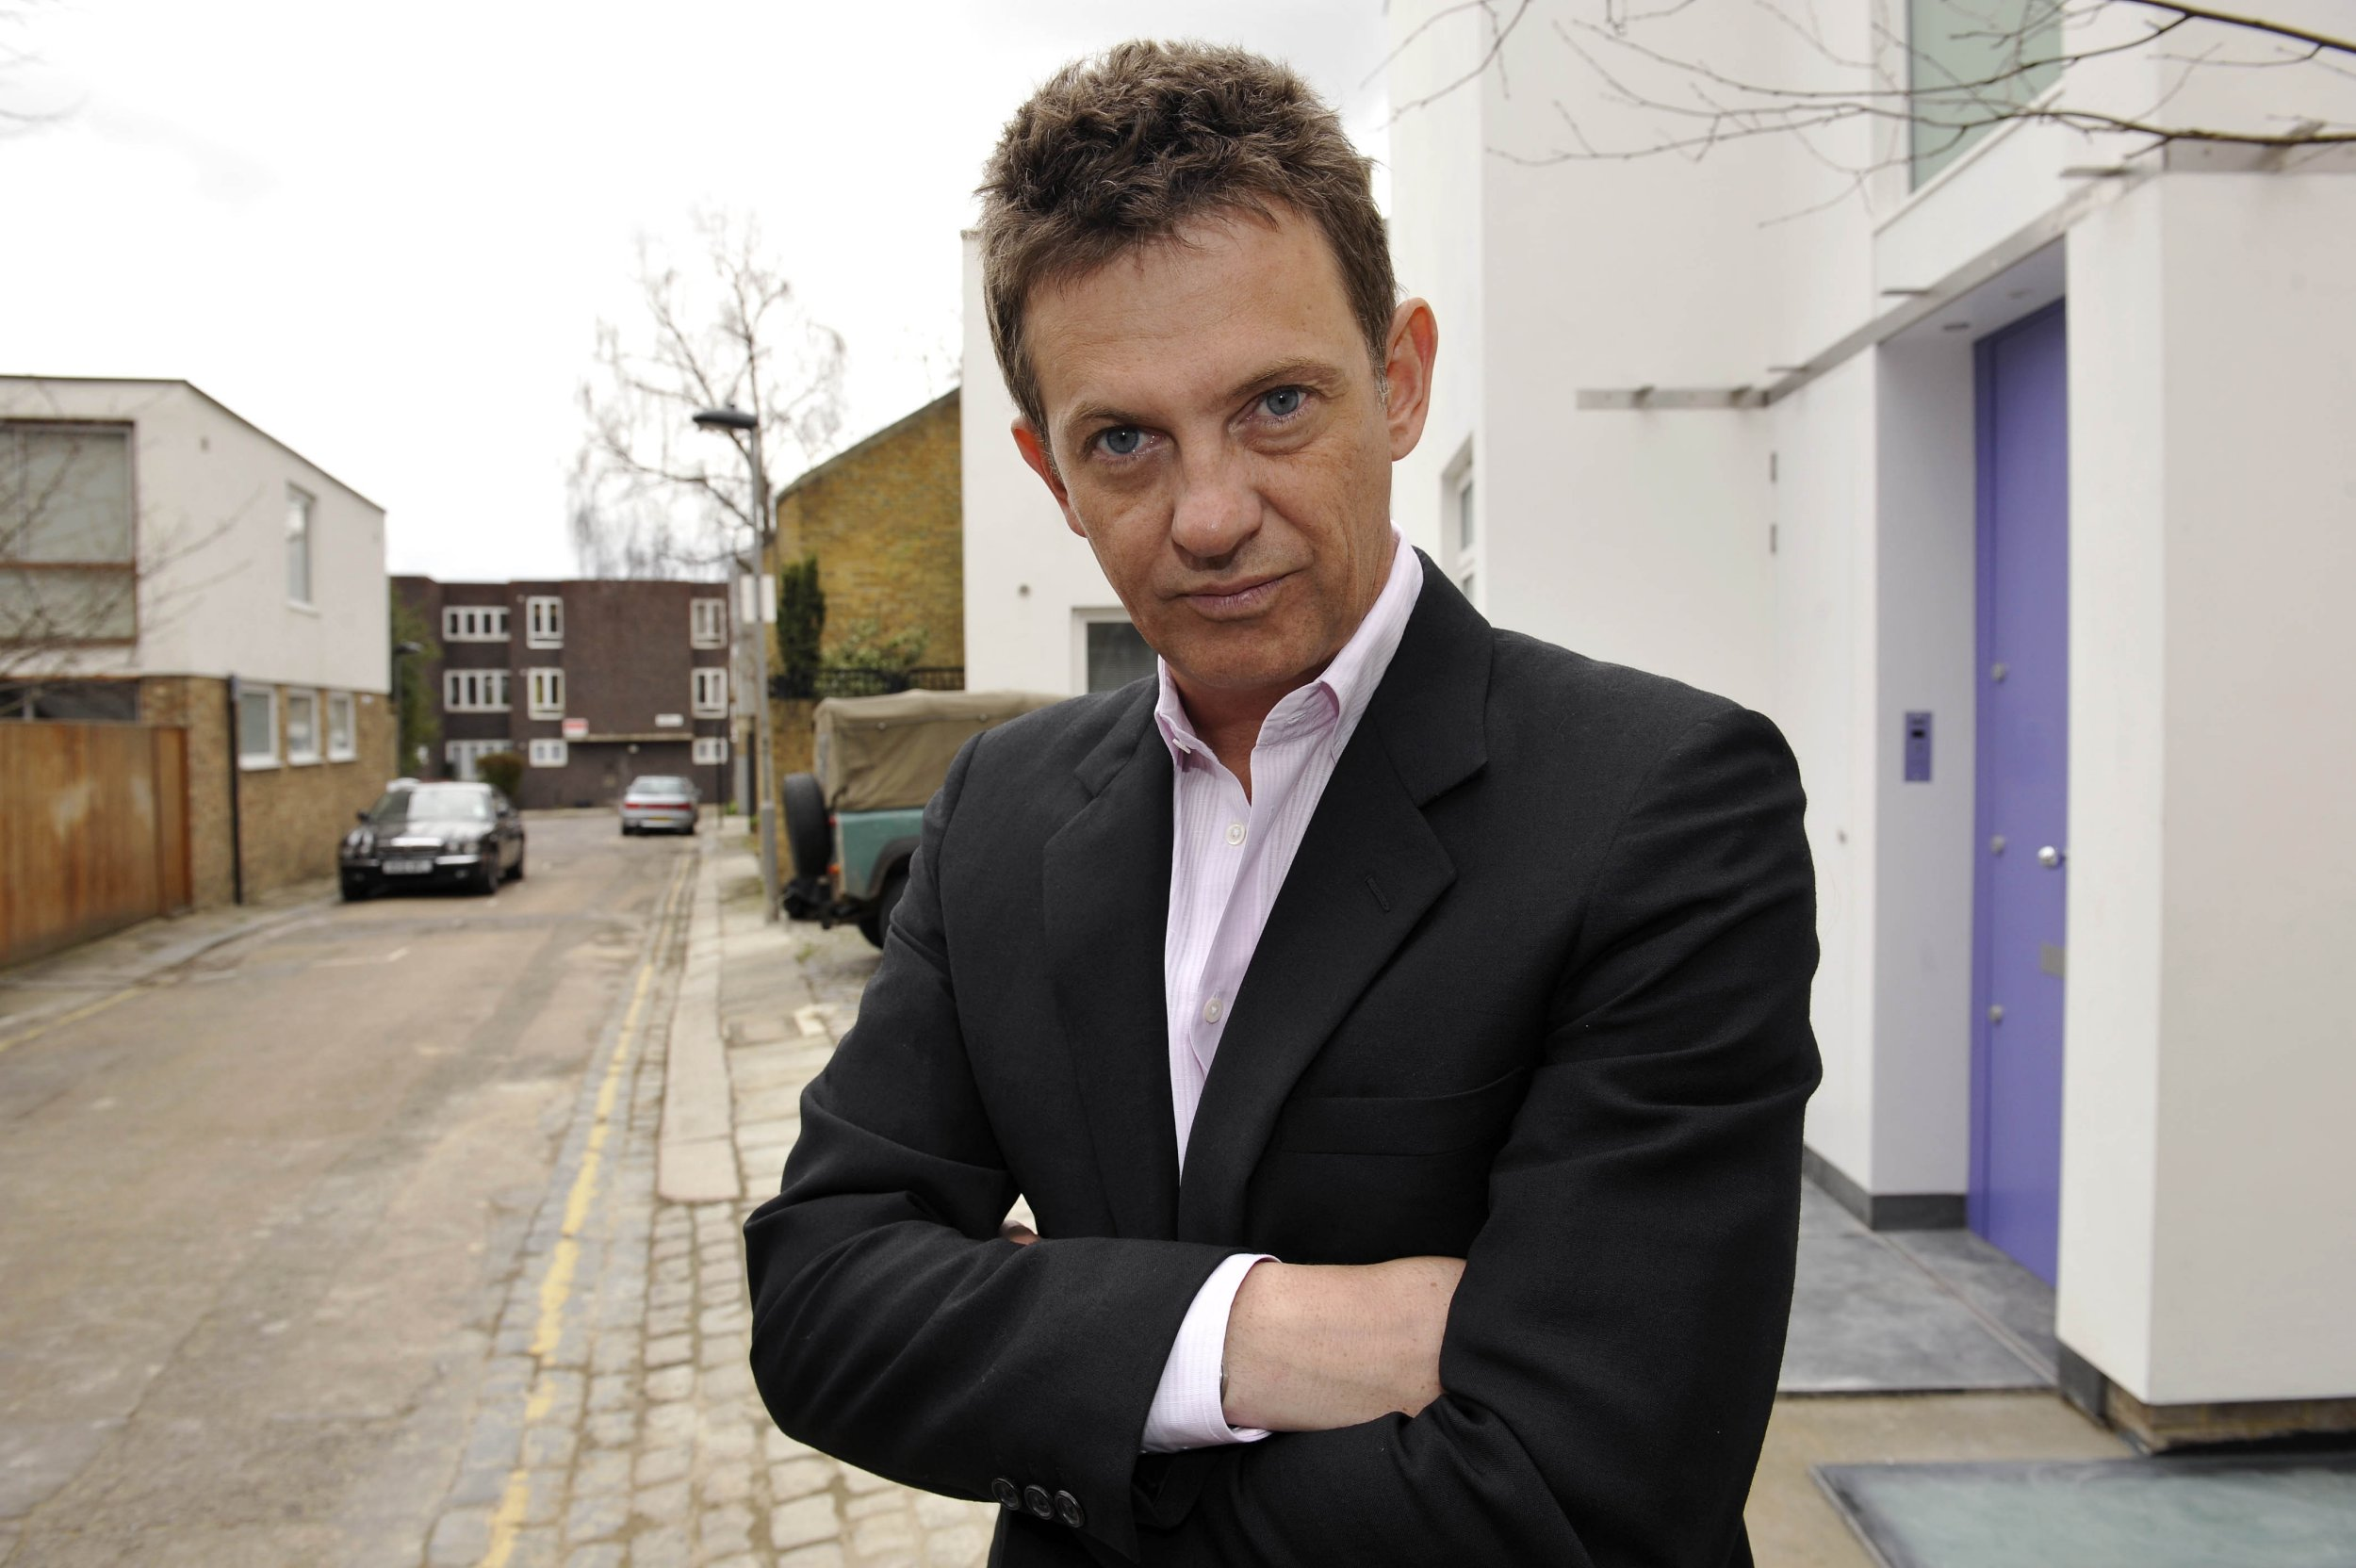 Matthew Wright 'stalker banned by Channel 5 from The Wright Stuff studios for being disruptive'